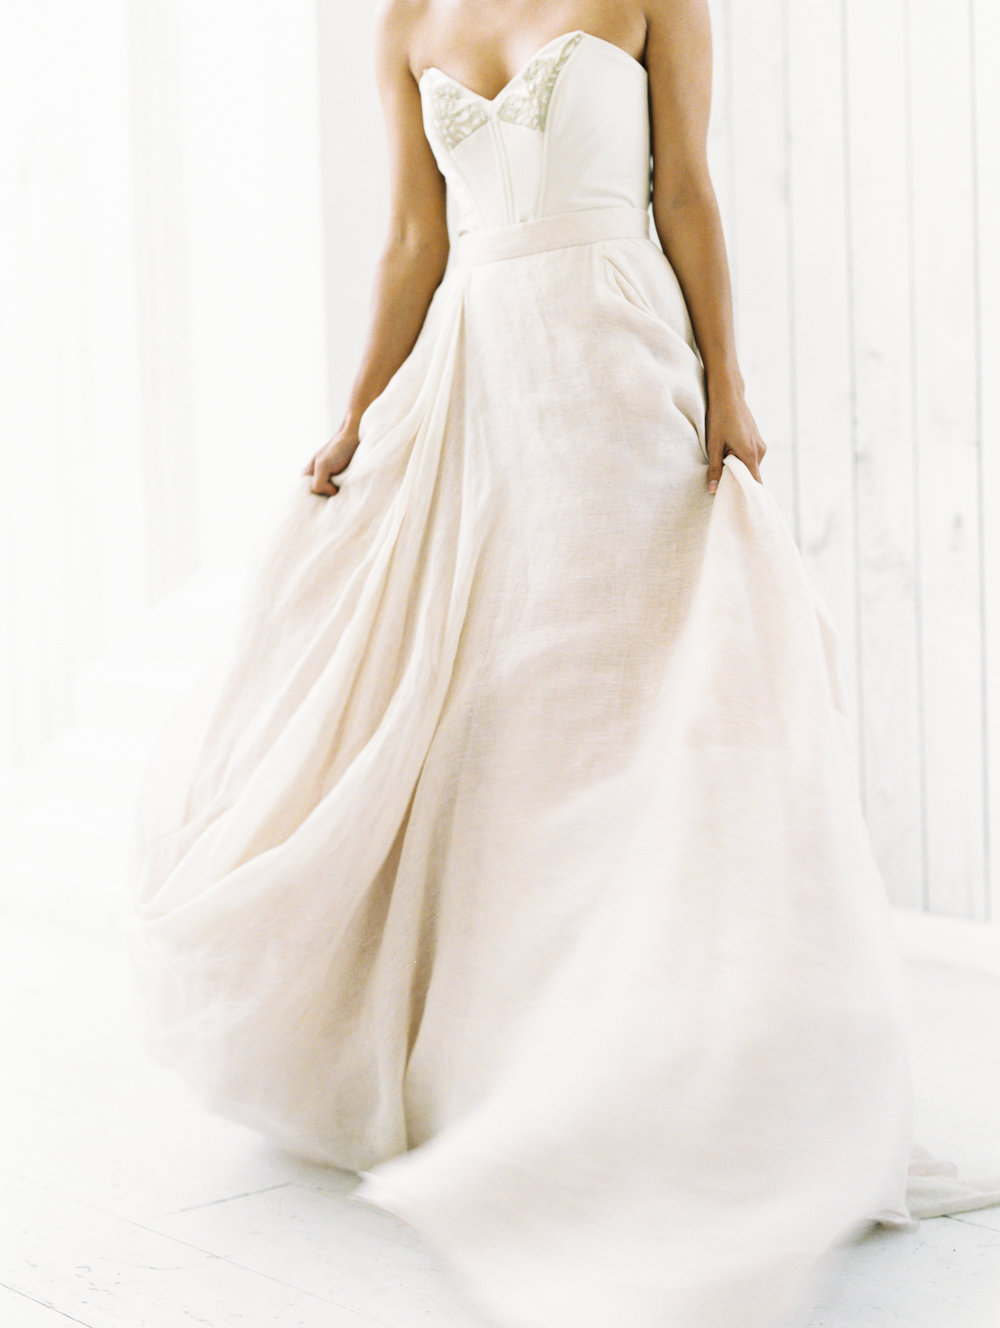 Carol Hannah fritillary wedding dress kensington skirt-1-245Carol Hannah fritillary wedding dress kensington skirt-1-245.JPG